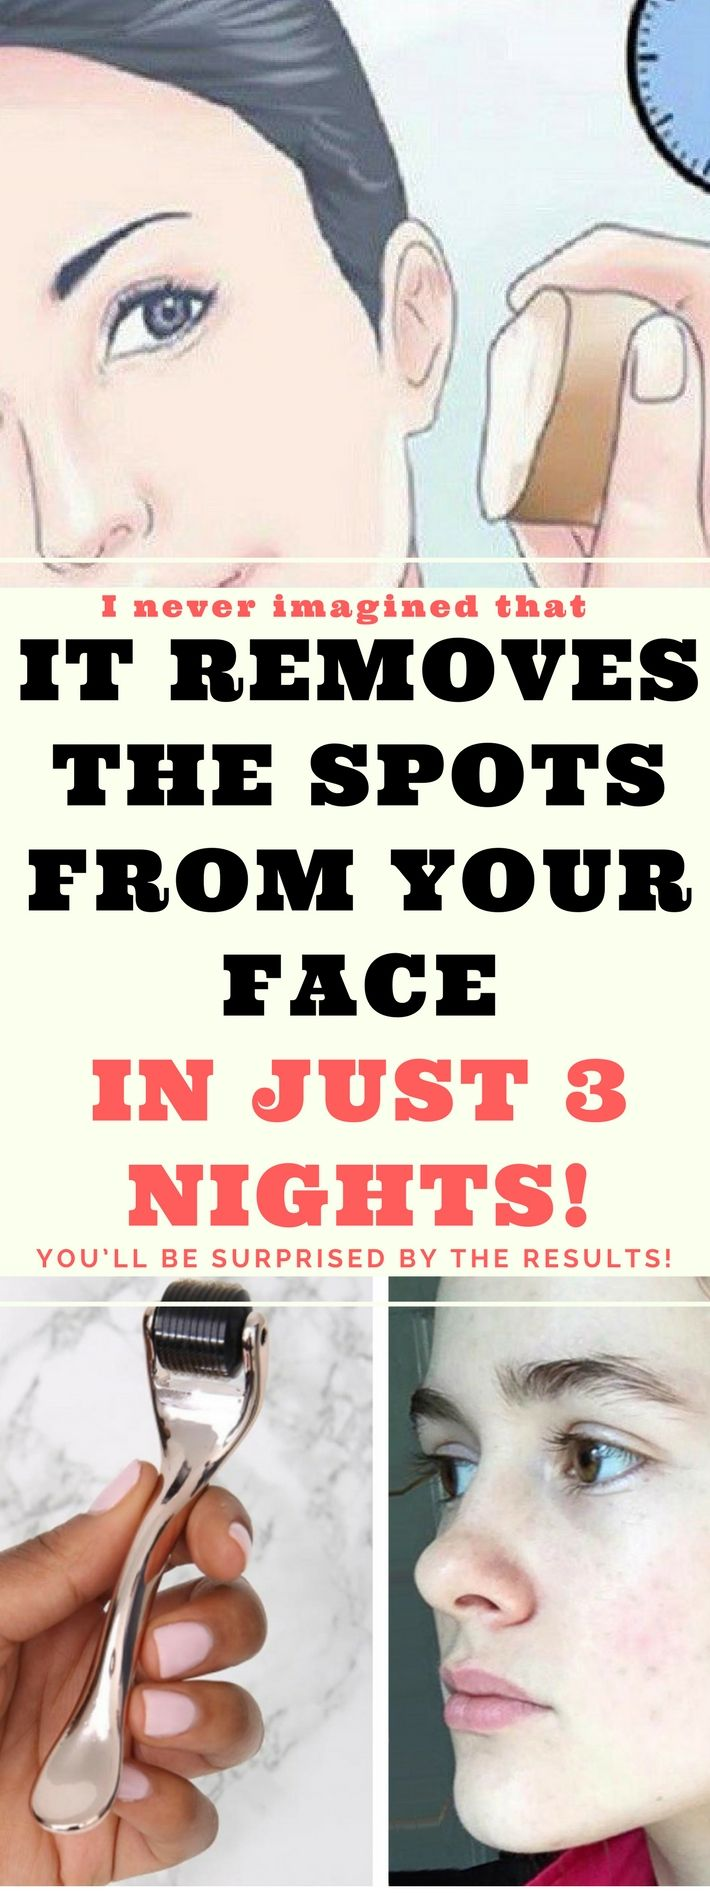 IT REMOVES THE SPOTS FROM YOUR FACE IN JUST 3 NIGHTS.. Need to know!!!!!